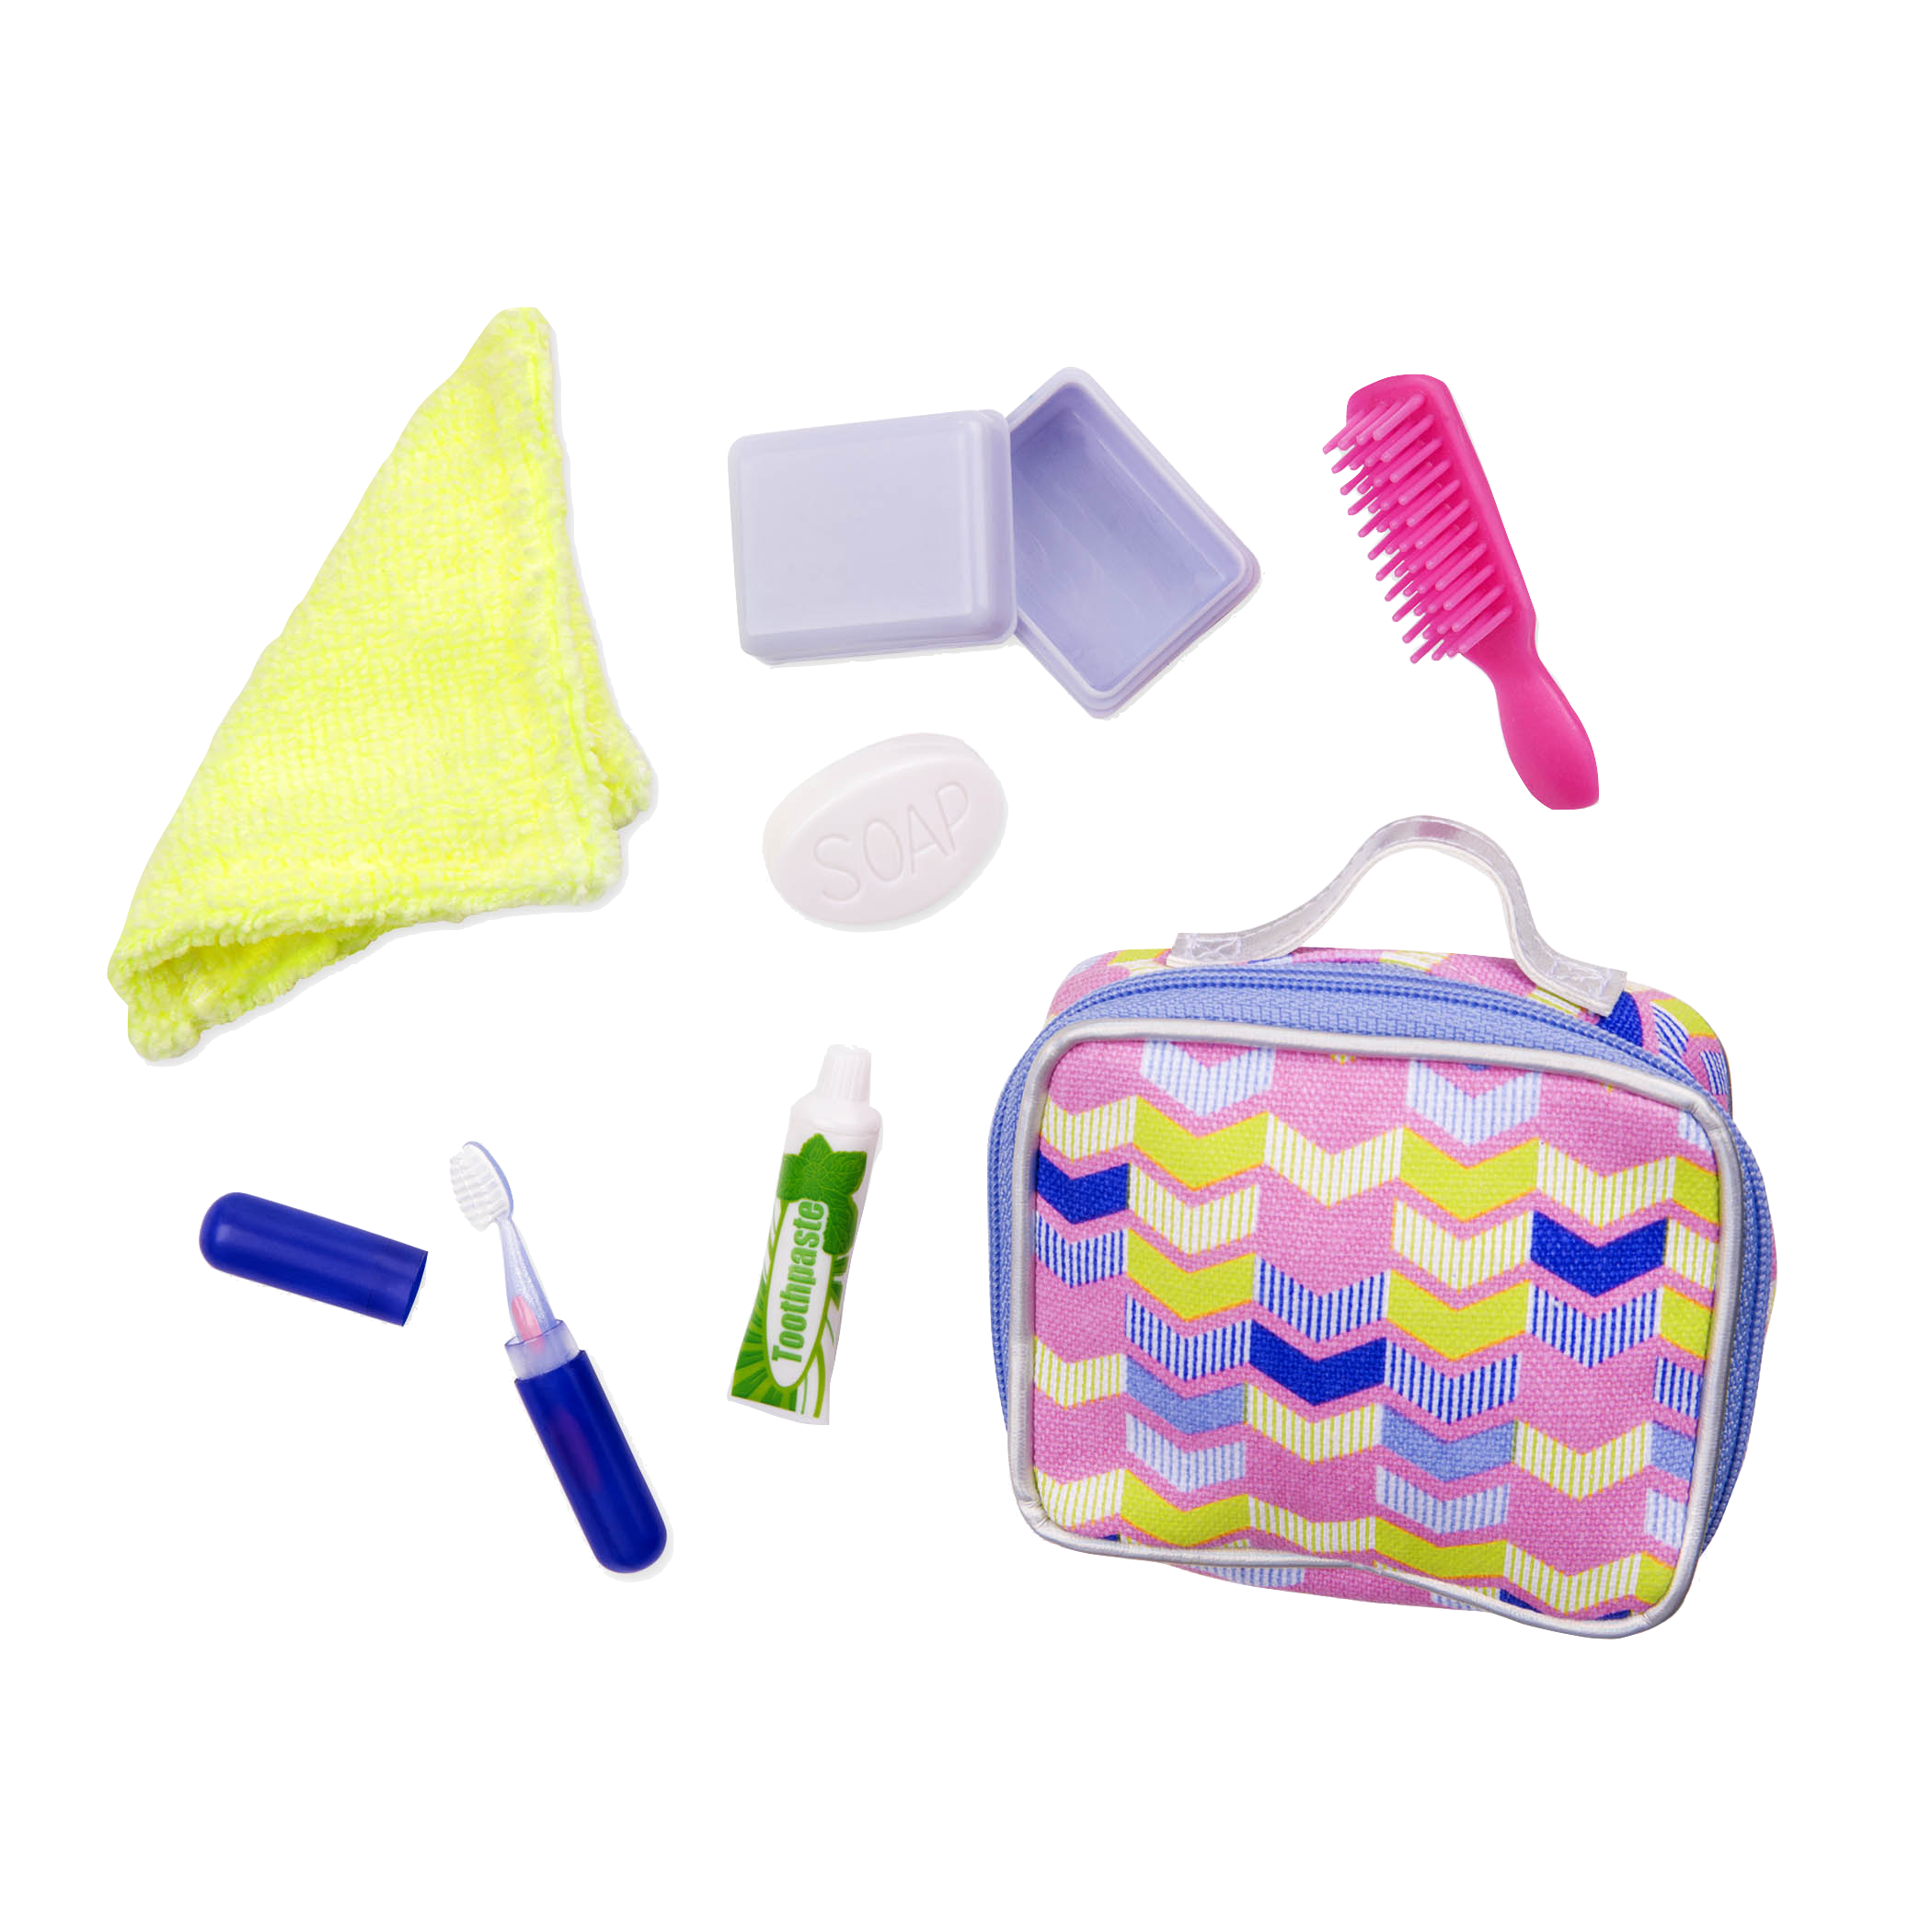 Sleepover Essentials Set for 18-inch Dolls